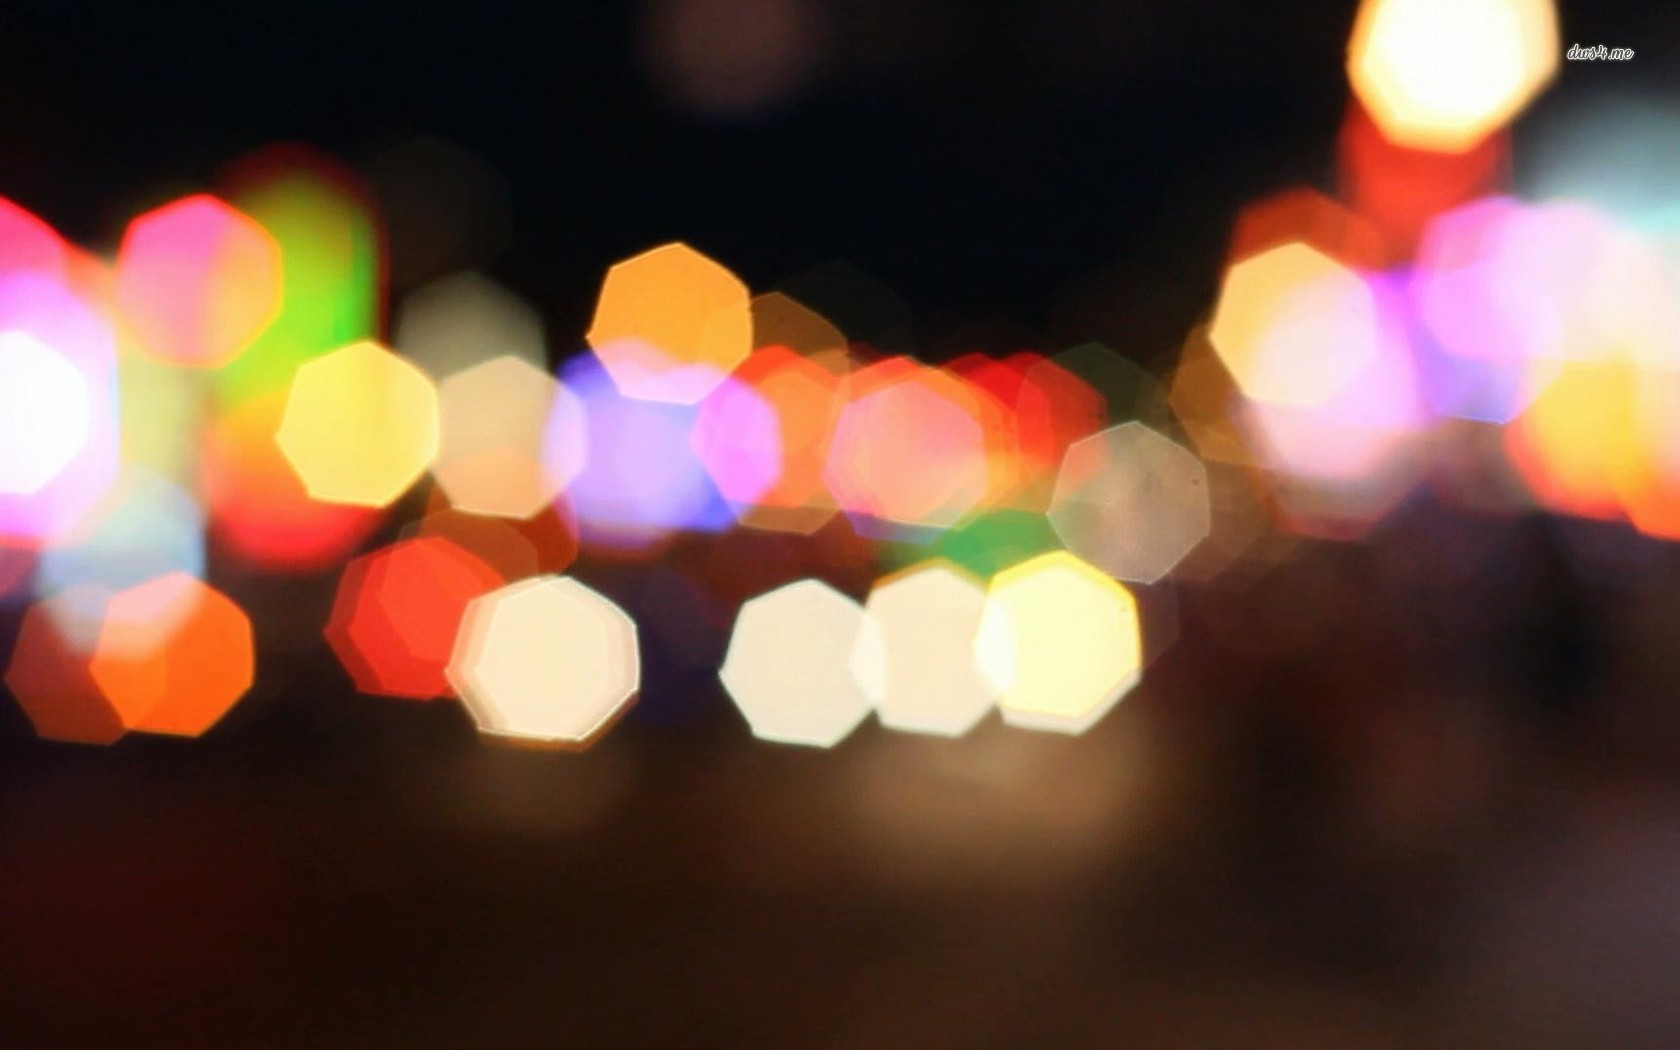 non blurry wallpapers for desktop - photo #22